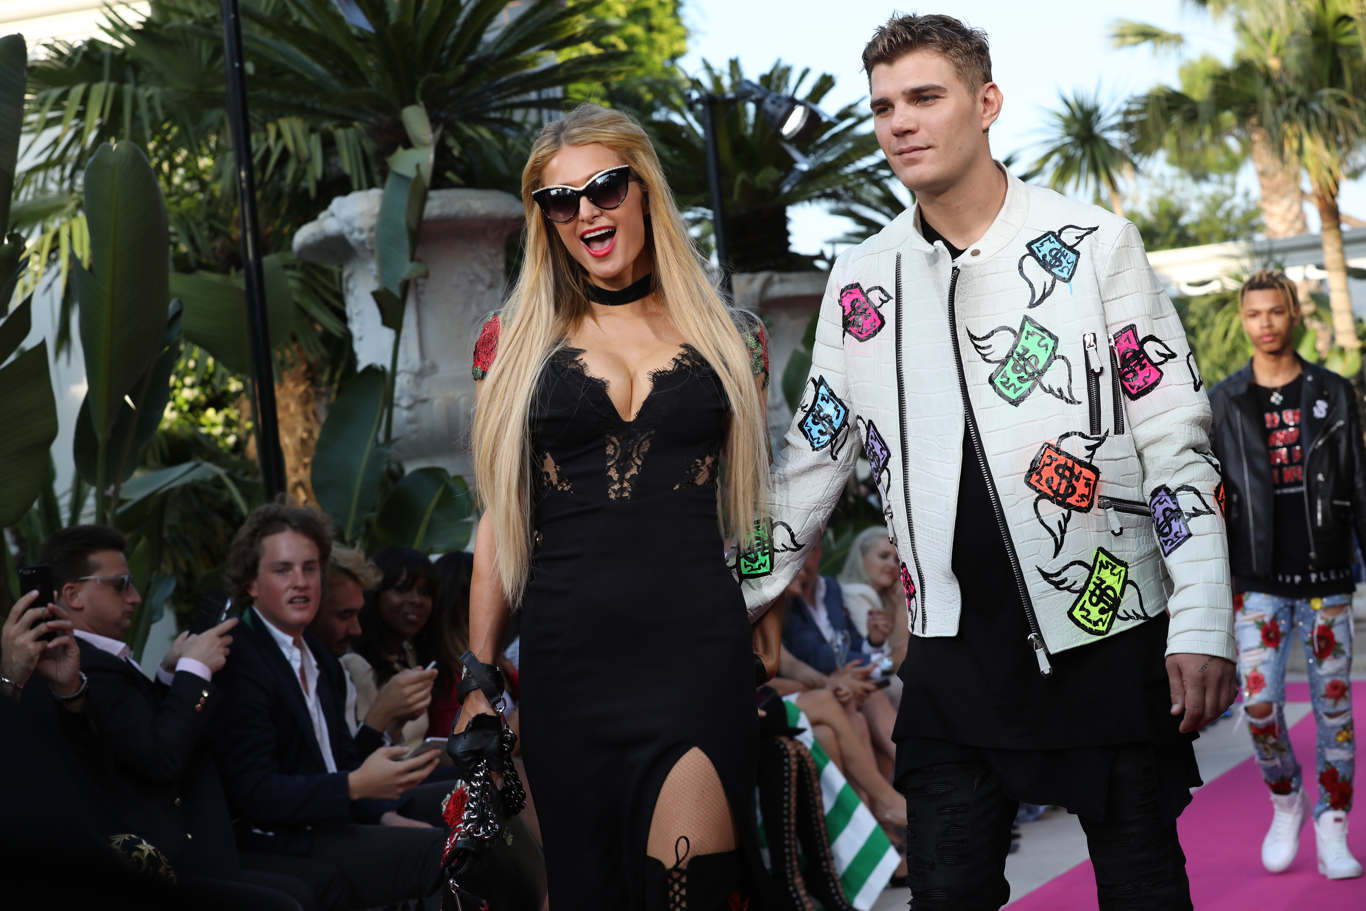 Paris Hilton and boyfriend Chris Zylka at Philipp Plein's show at his villa during Cannes Film Festival.